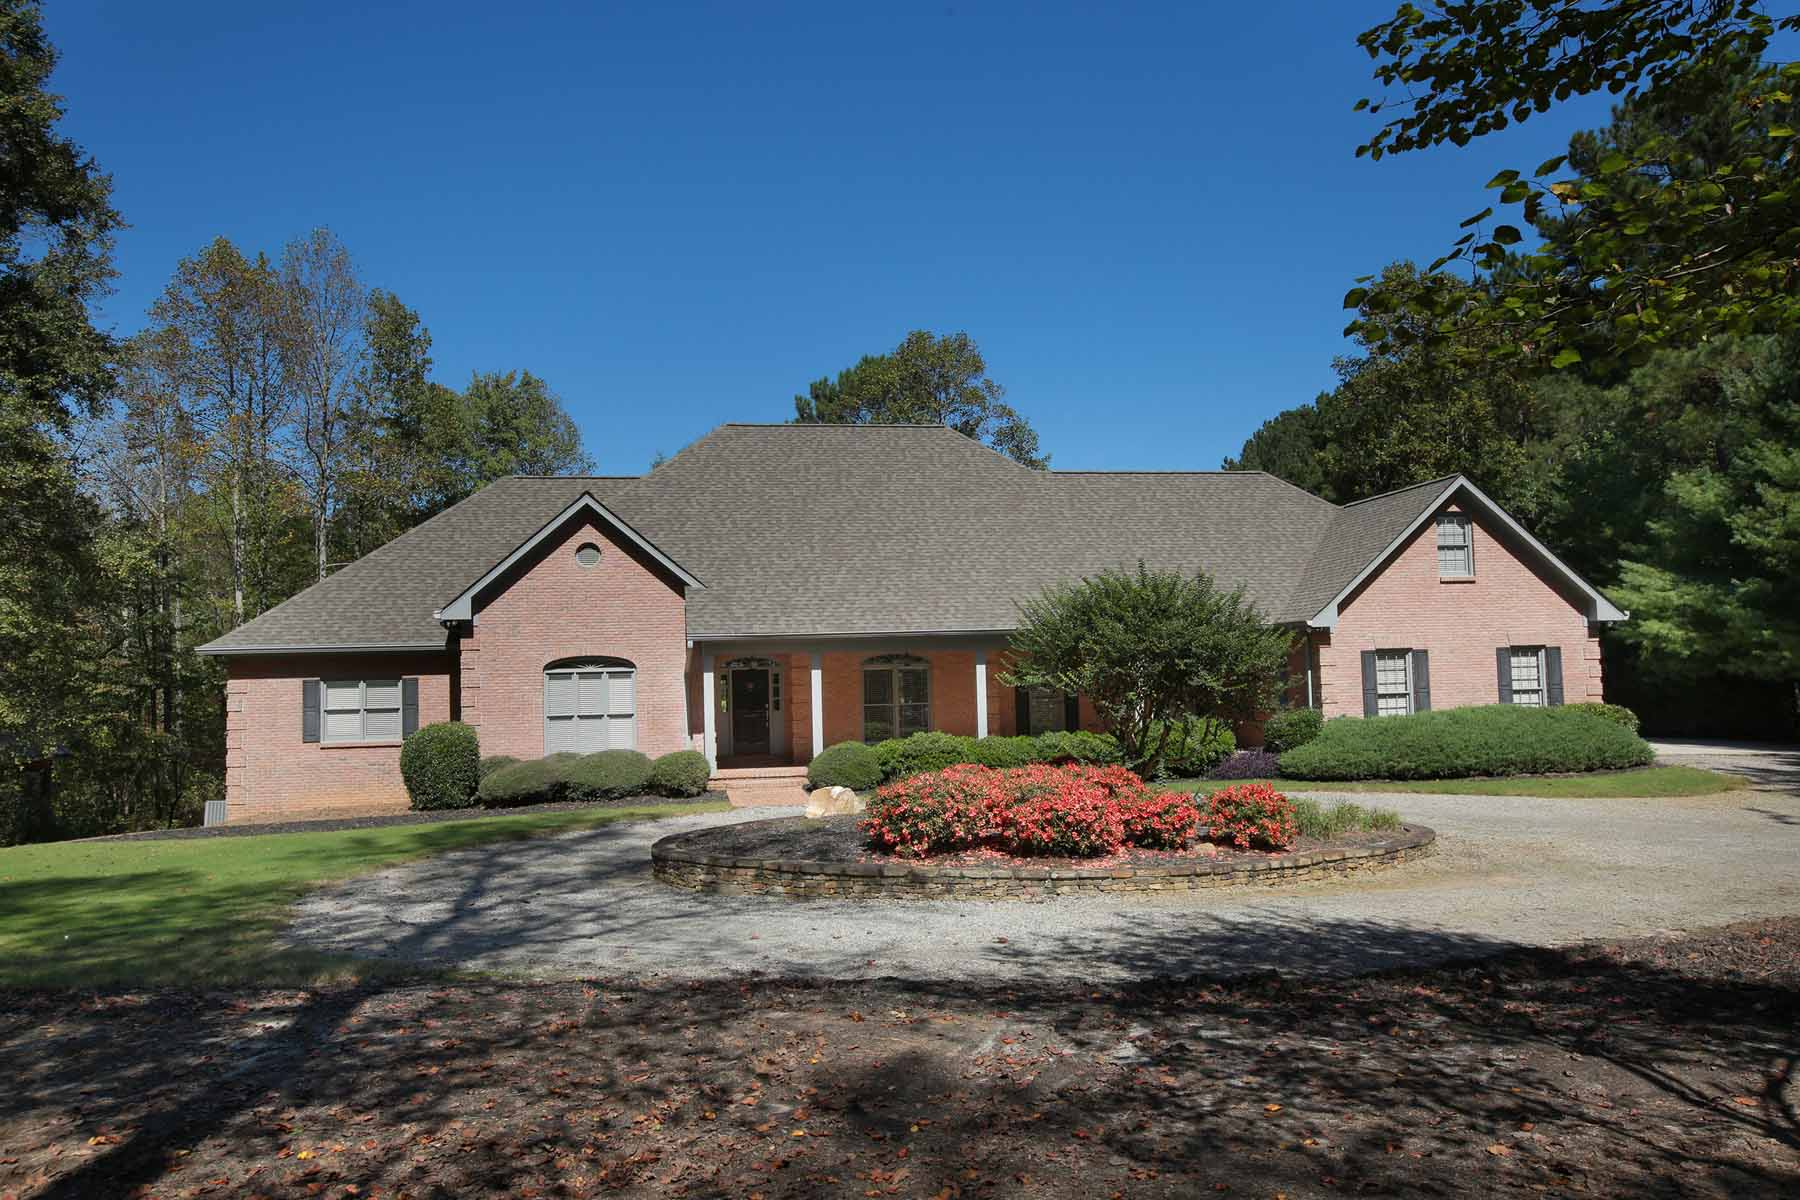 Single Family Home for Sale at Private Estate on 7+ Acres 4090 Bass Lane Cumming, Georgia, 30028 United States